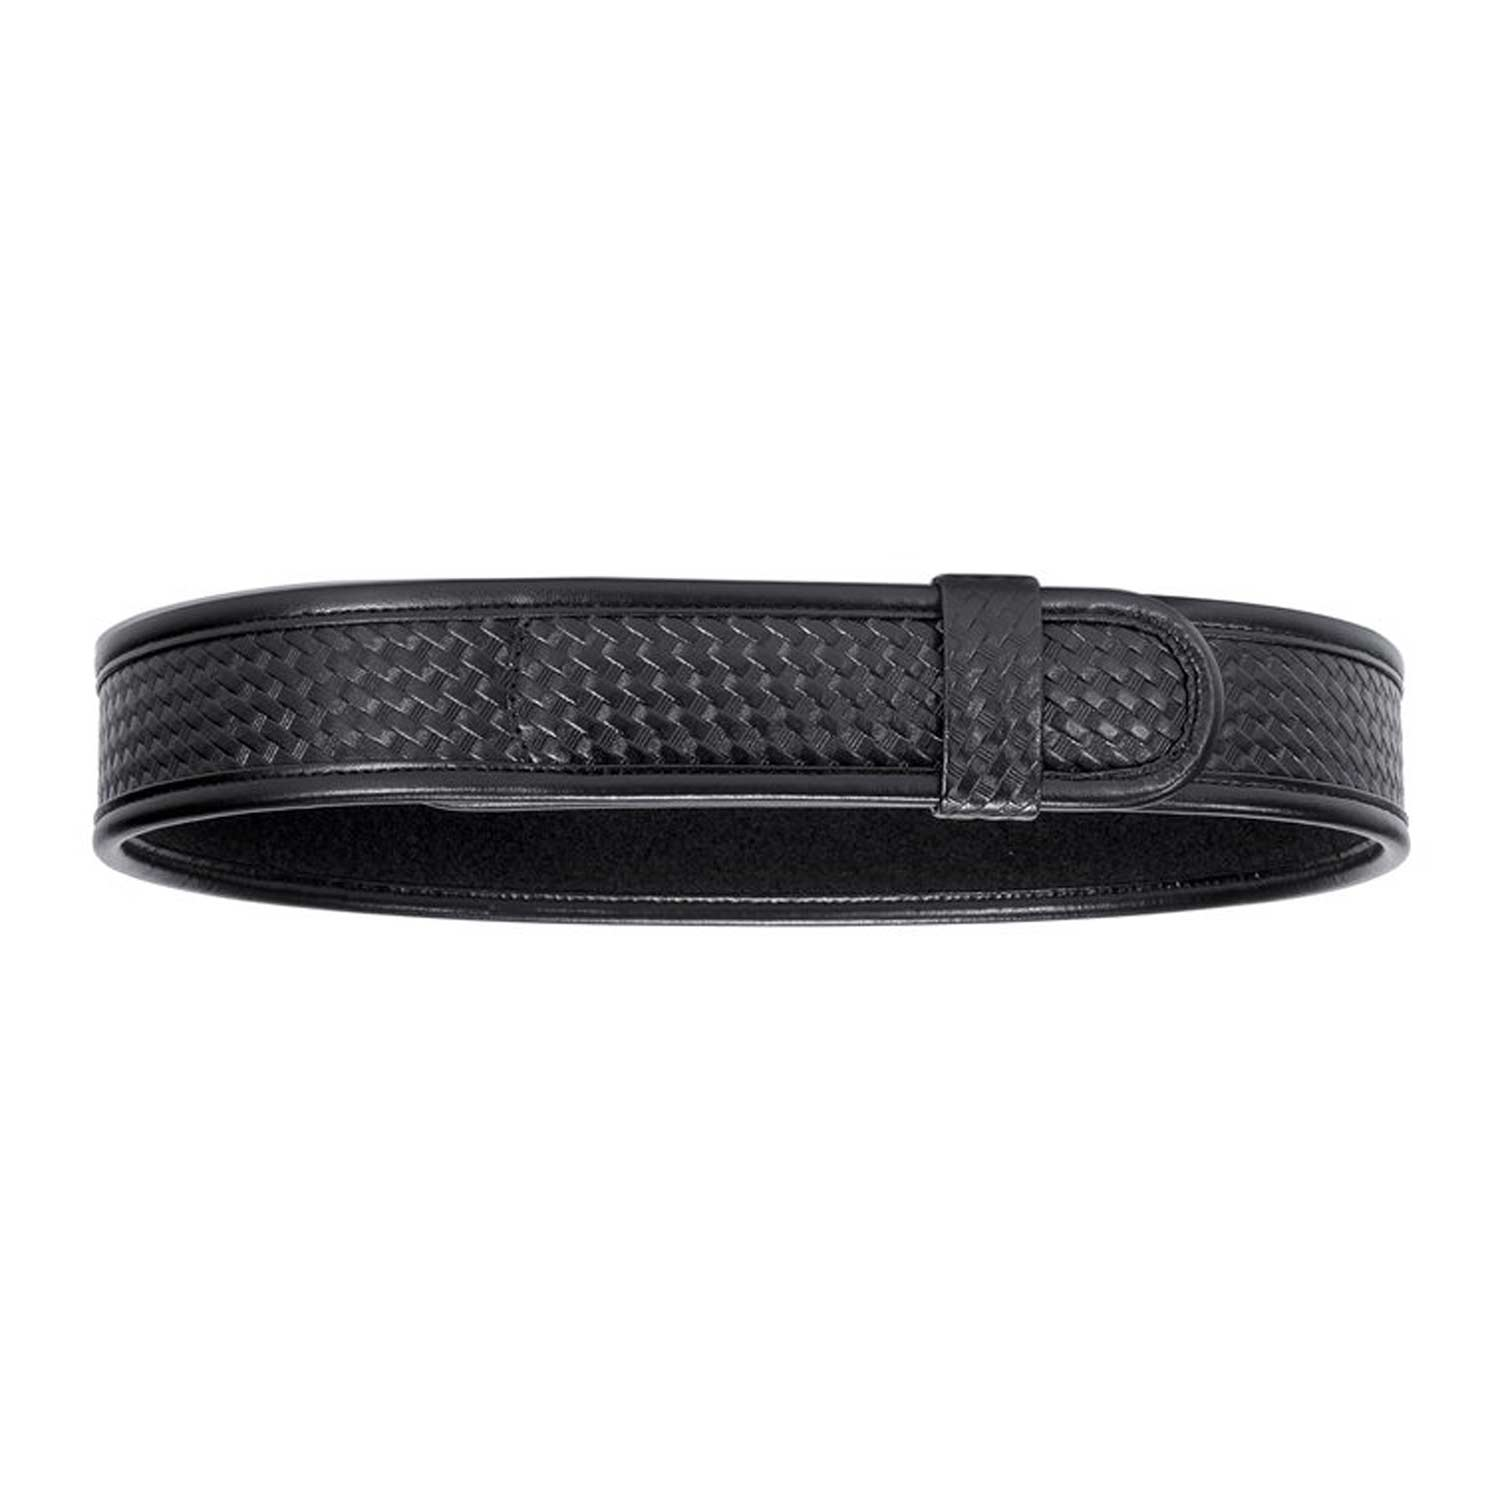 Bianchi AccuMold Elite Buckleless Duty Belt